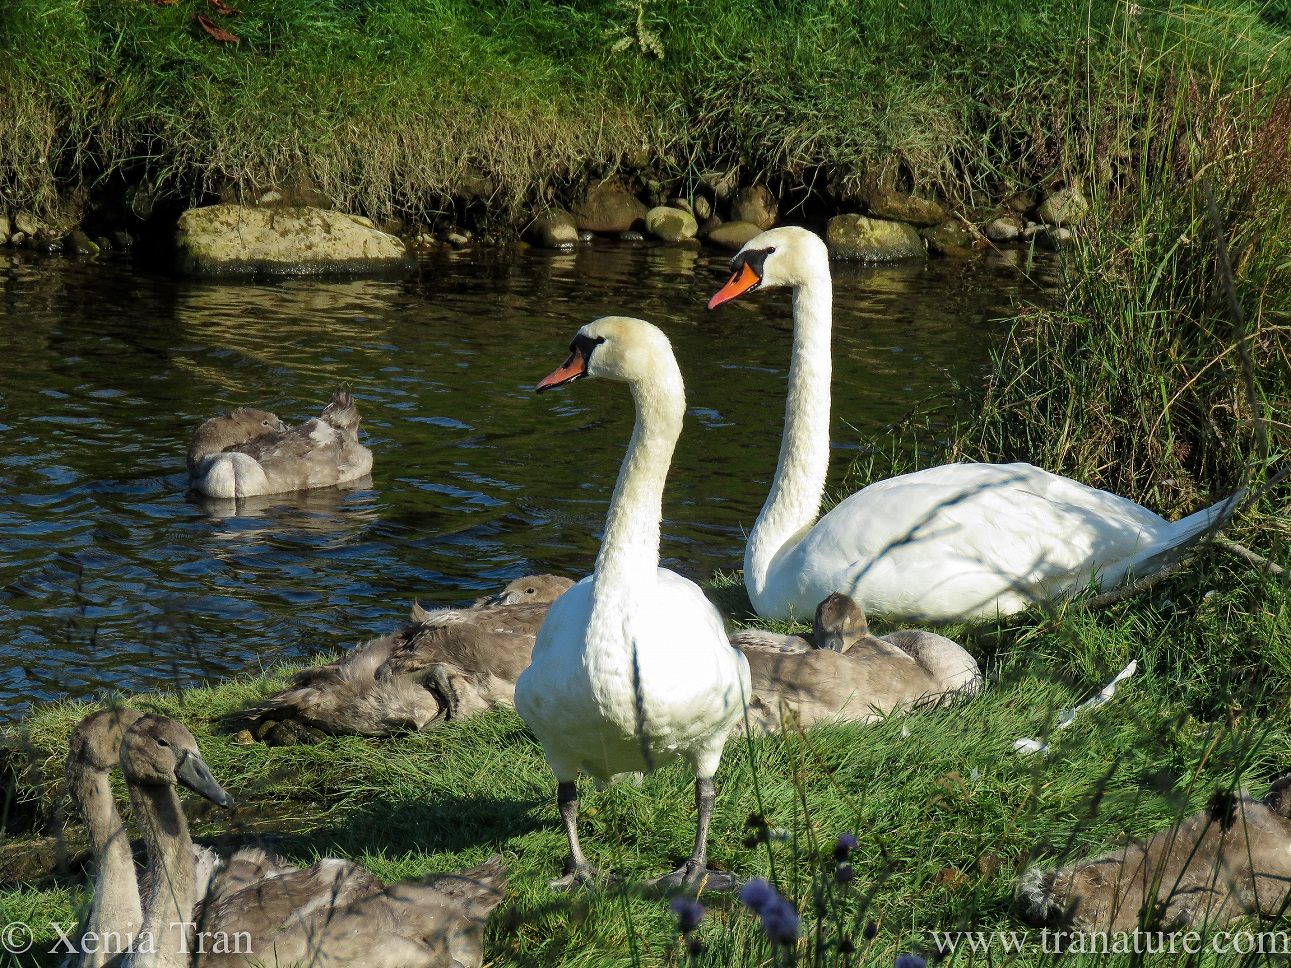 Silent Sunday: On a Bend in the River